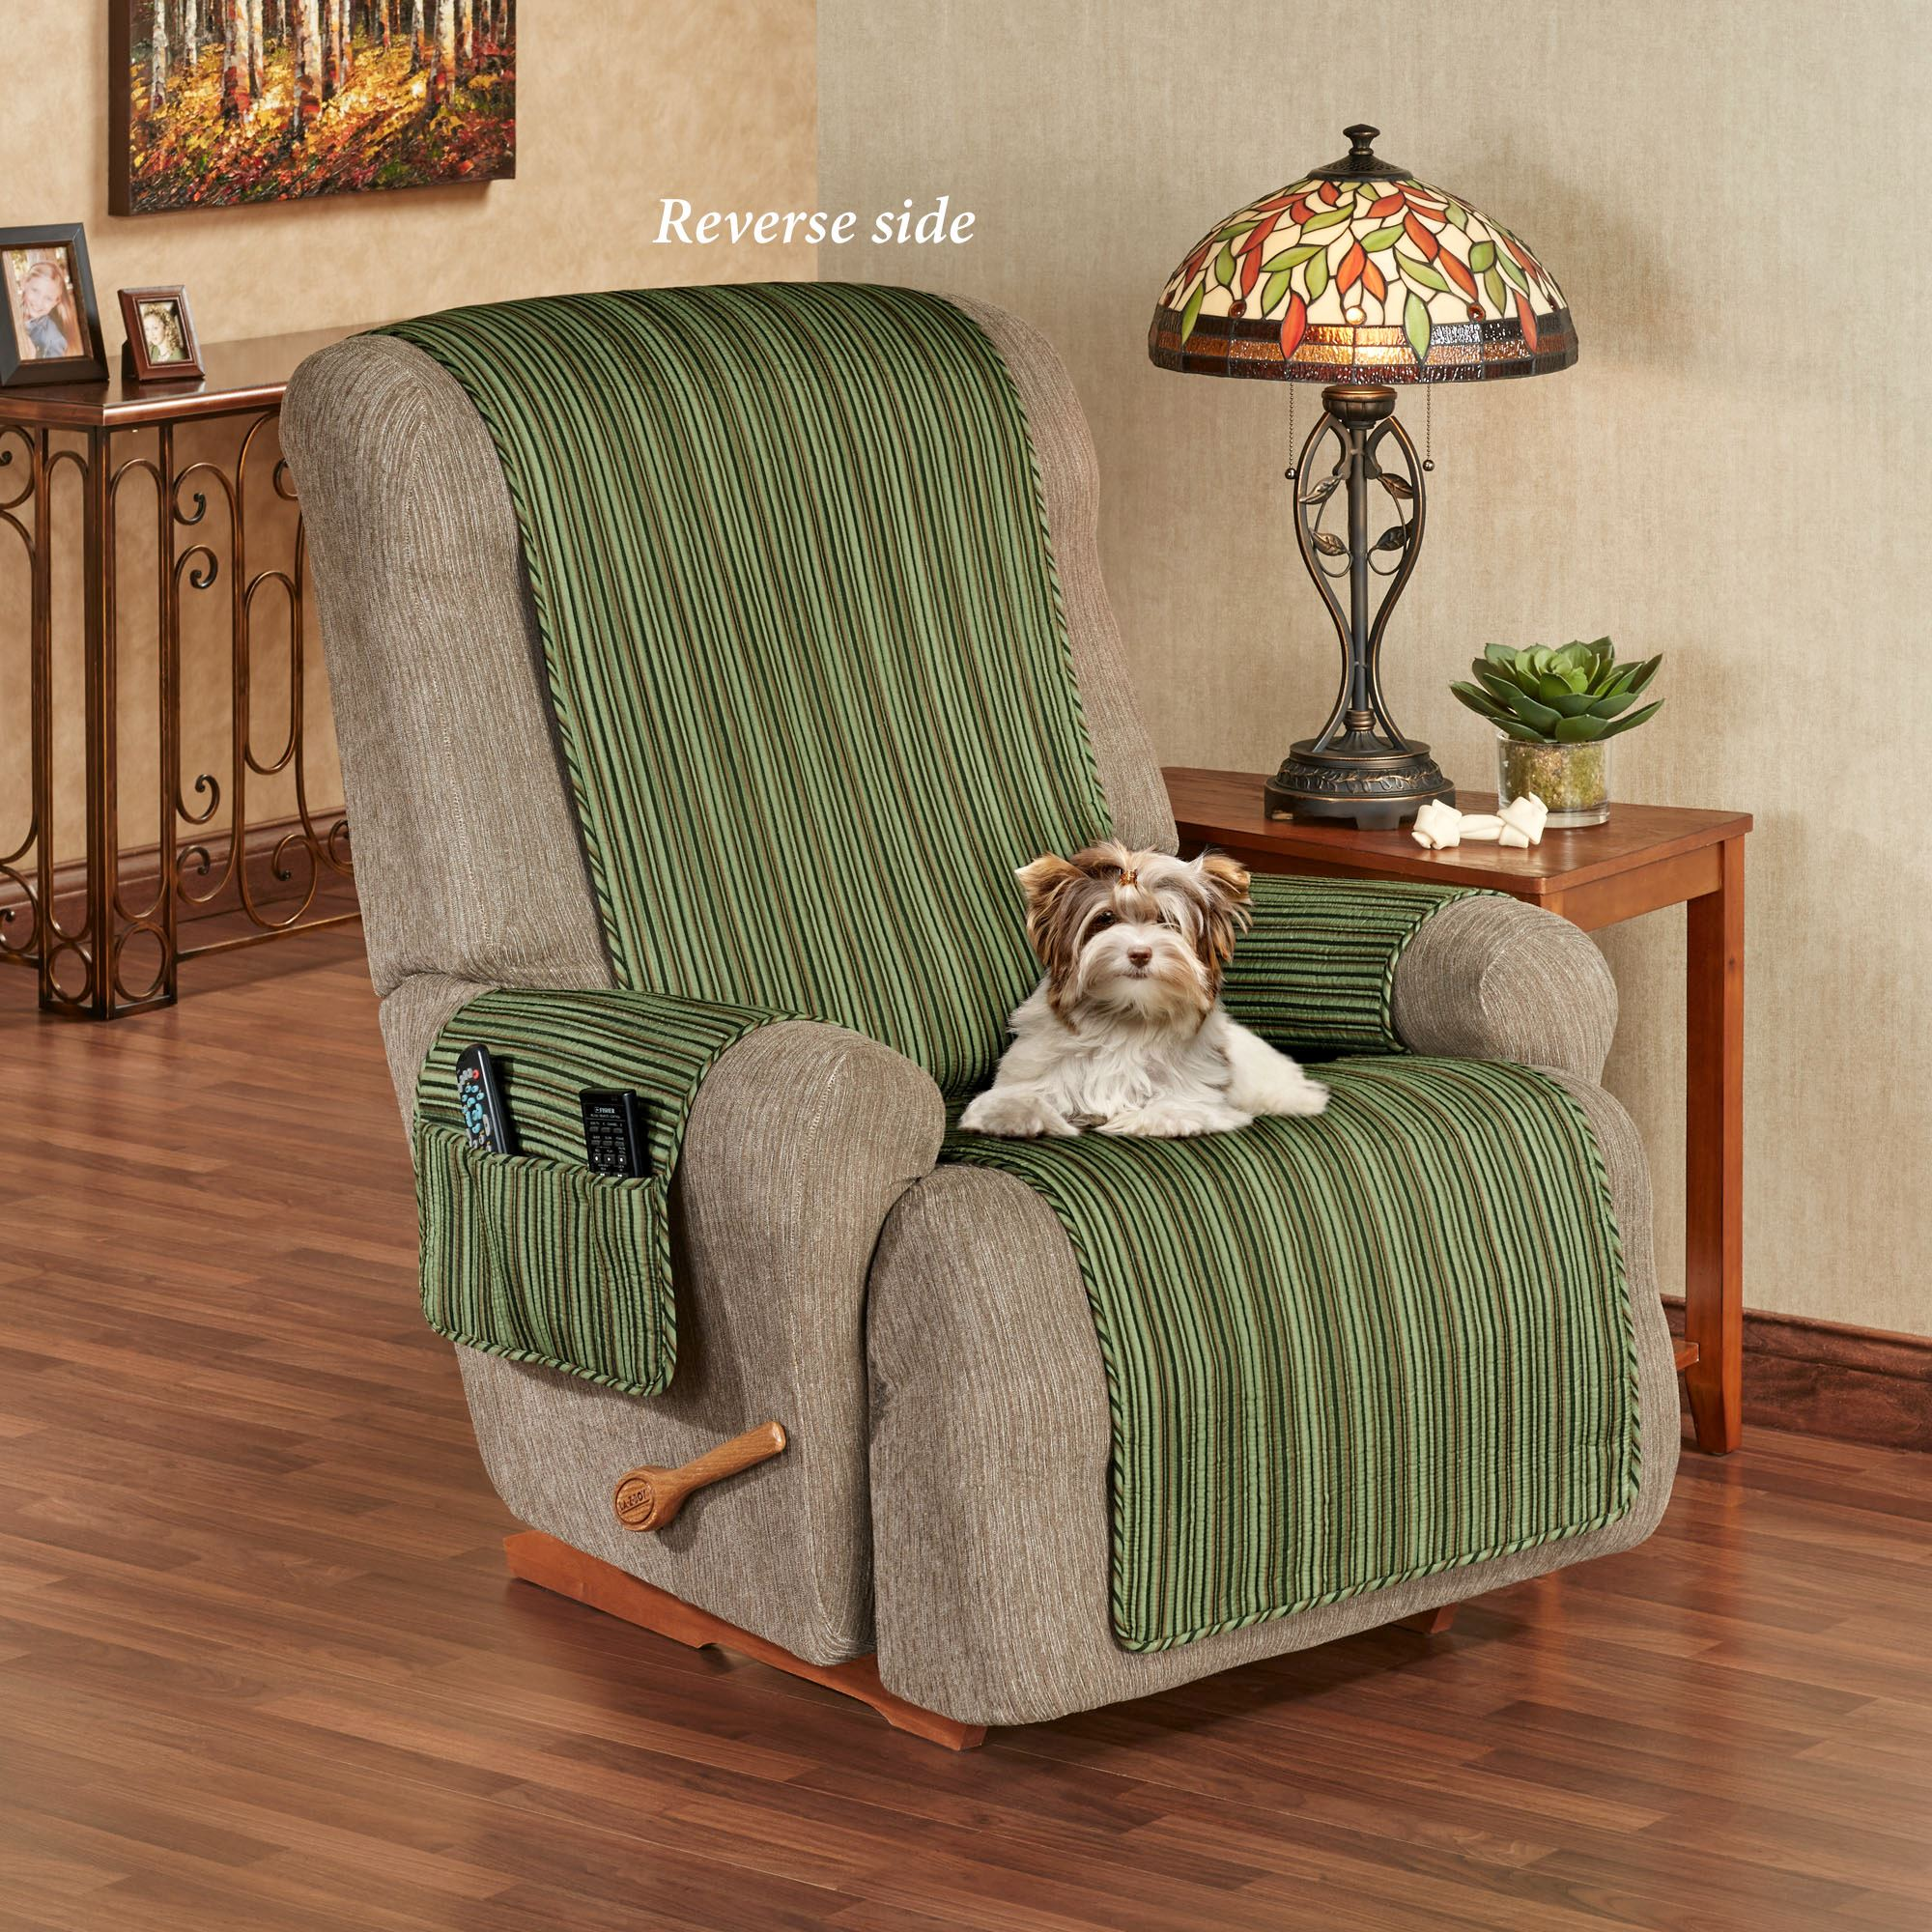 Furniture Websites With Free Shipping: Riverpark Reversible Striped Furniture Covers